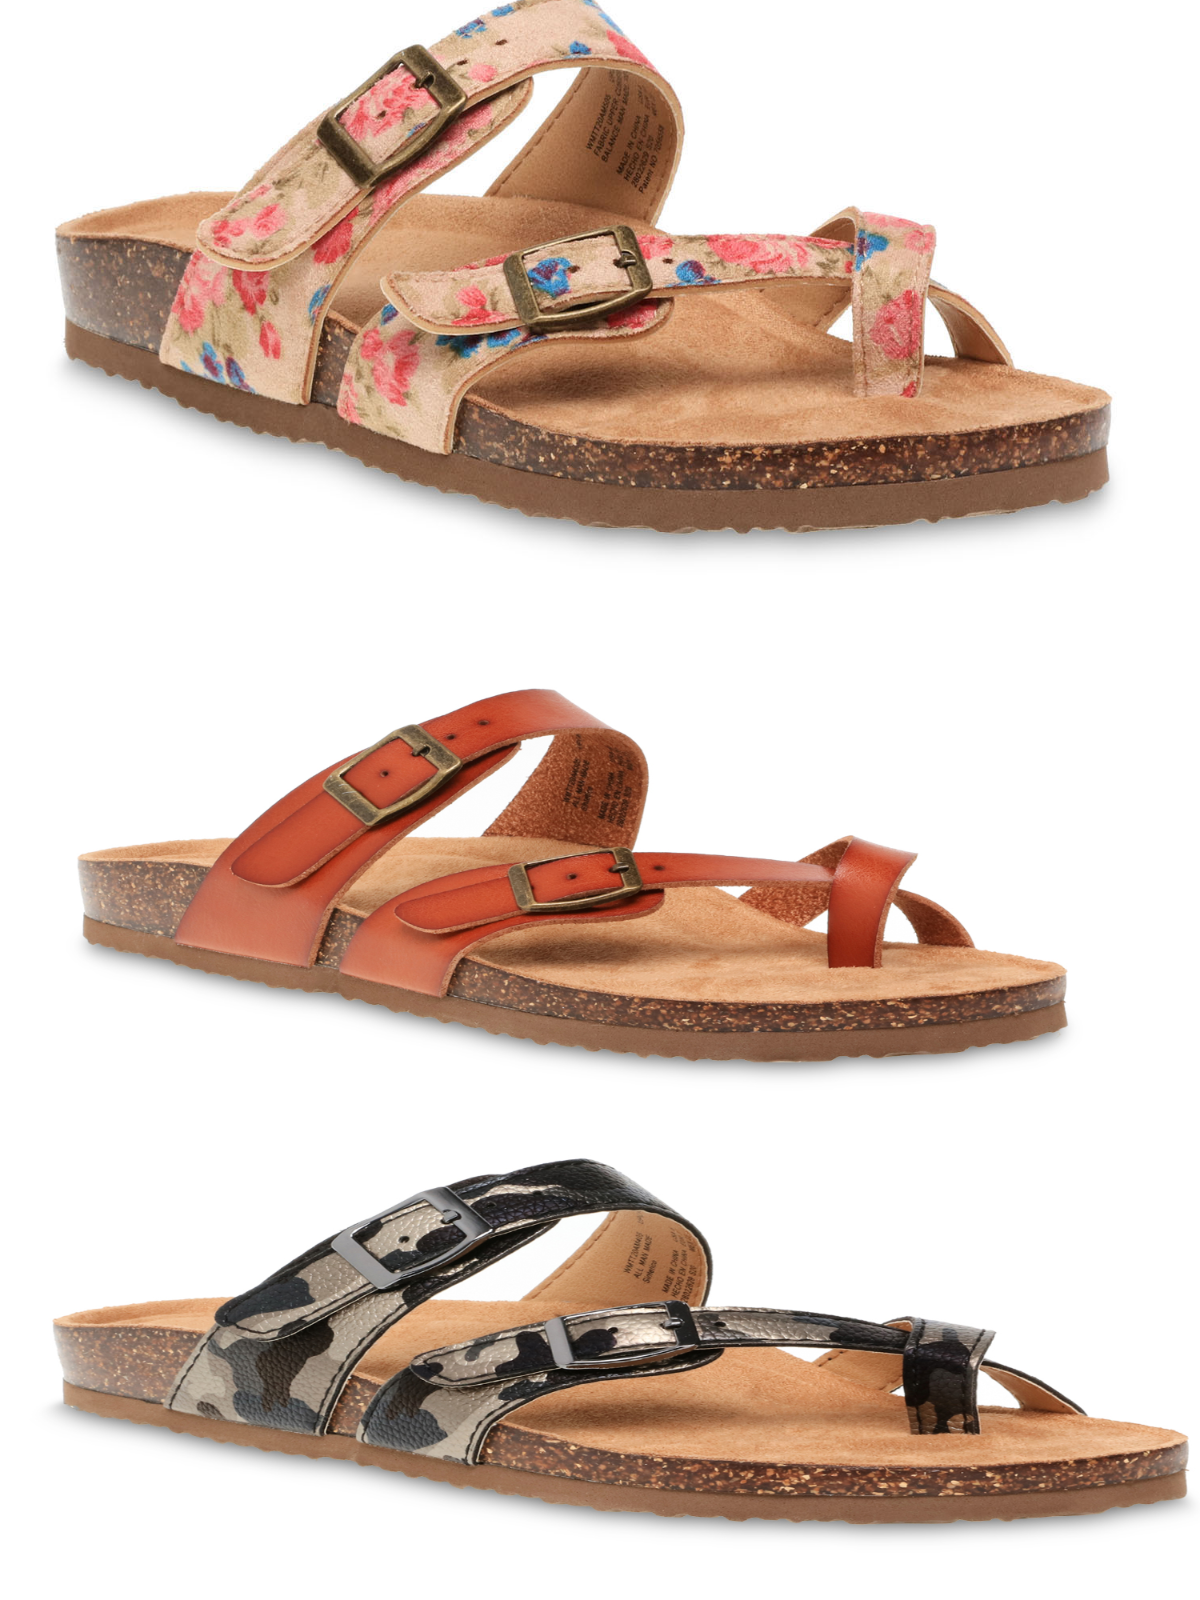 NEW TIME & TRU CORK SOLE MOLDED FOOTBED TOE LOOP/STRAP THONG SLIDE SANDAL Clothing, Shoes & Accessories